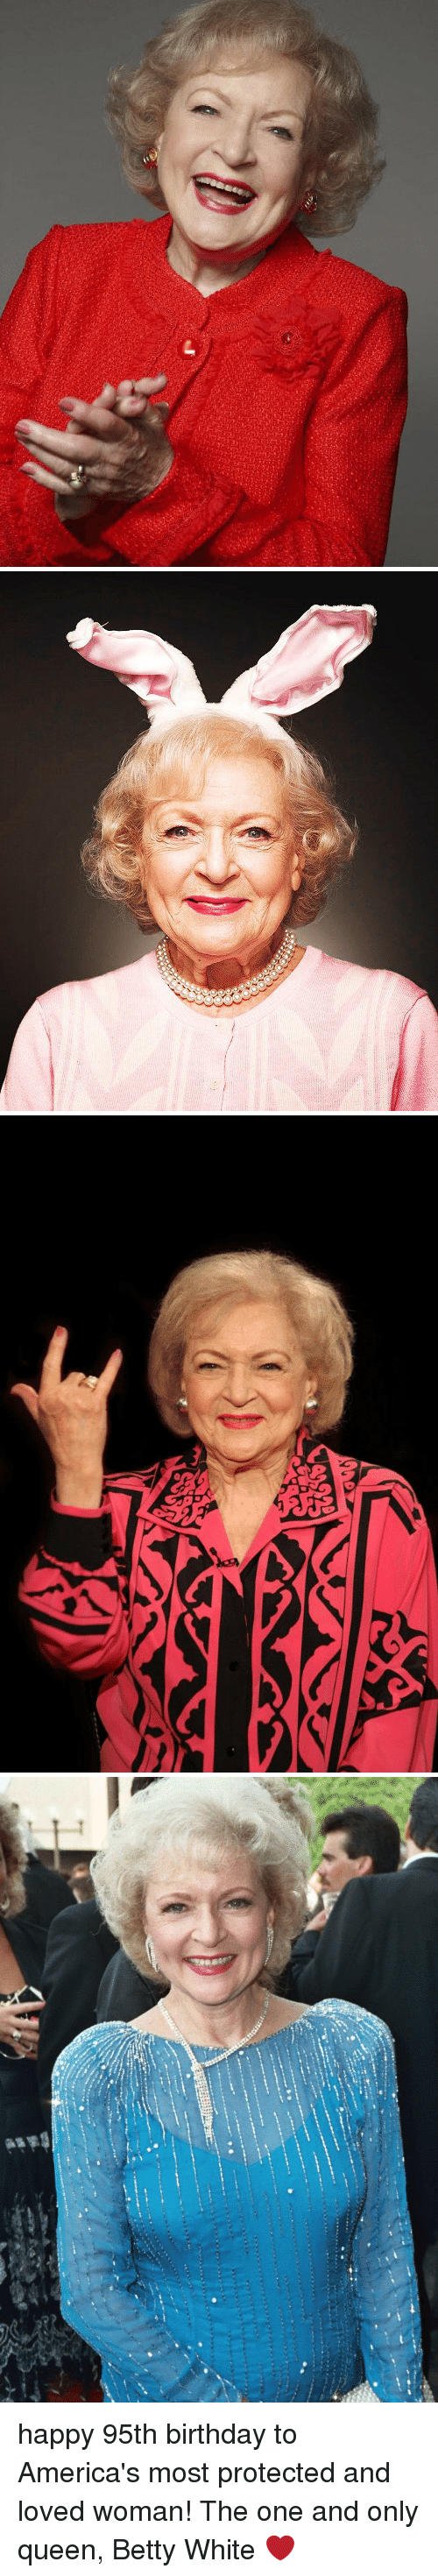 Betty White, Girl Memes, and  the One and Only: happy 95th birthday to America's most protected and loved woman! The one and only queen, Betty White ❤️